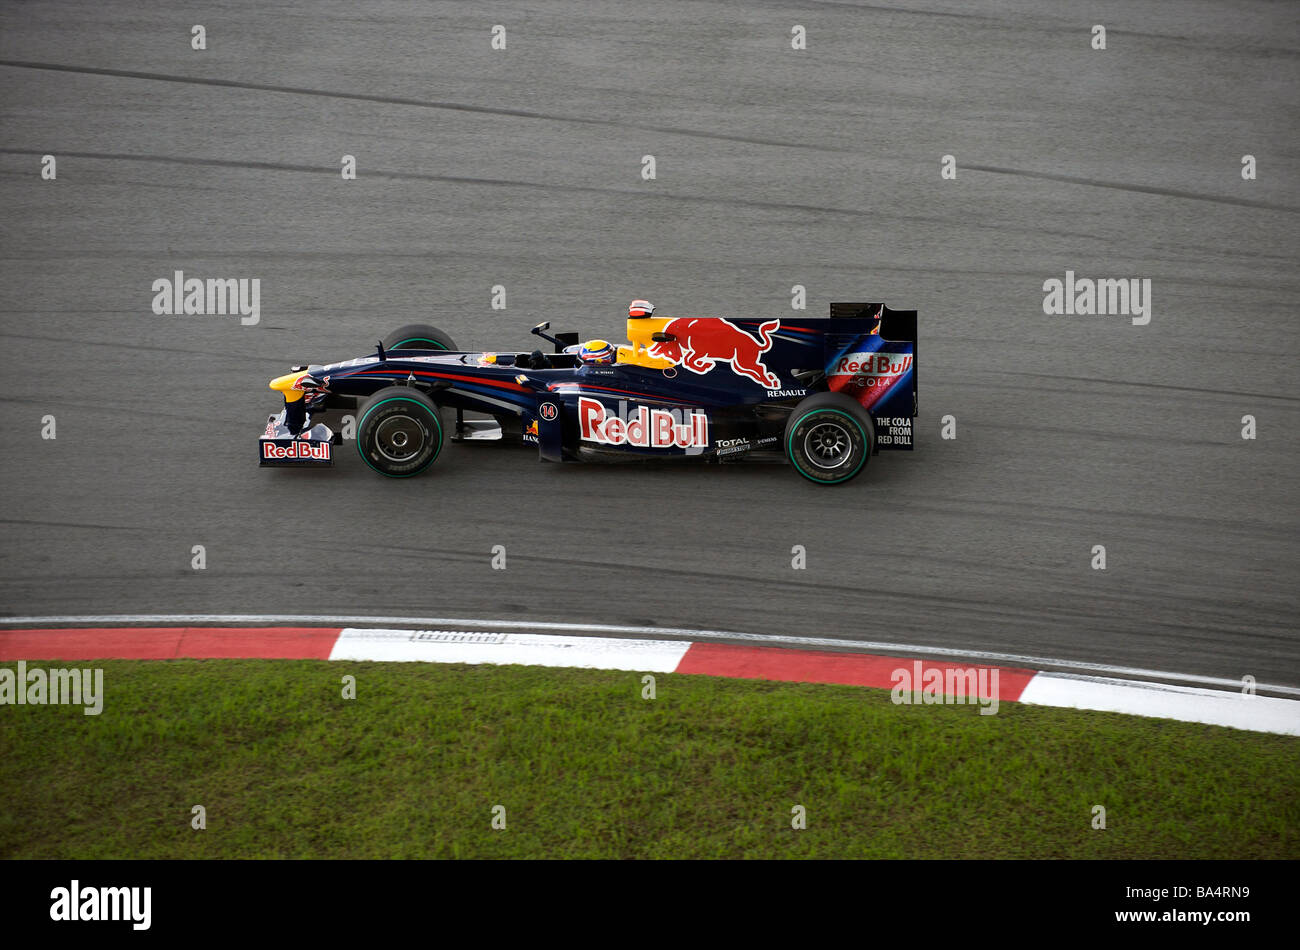 Red Bull Racing driver Mark Webber of Australia steers his car during the third practice session ahead the 2009 - Stock Image